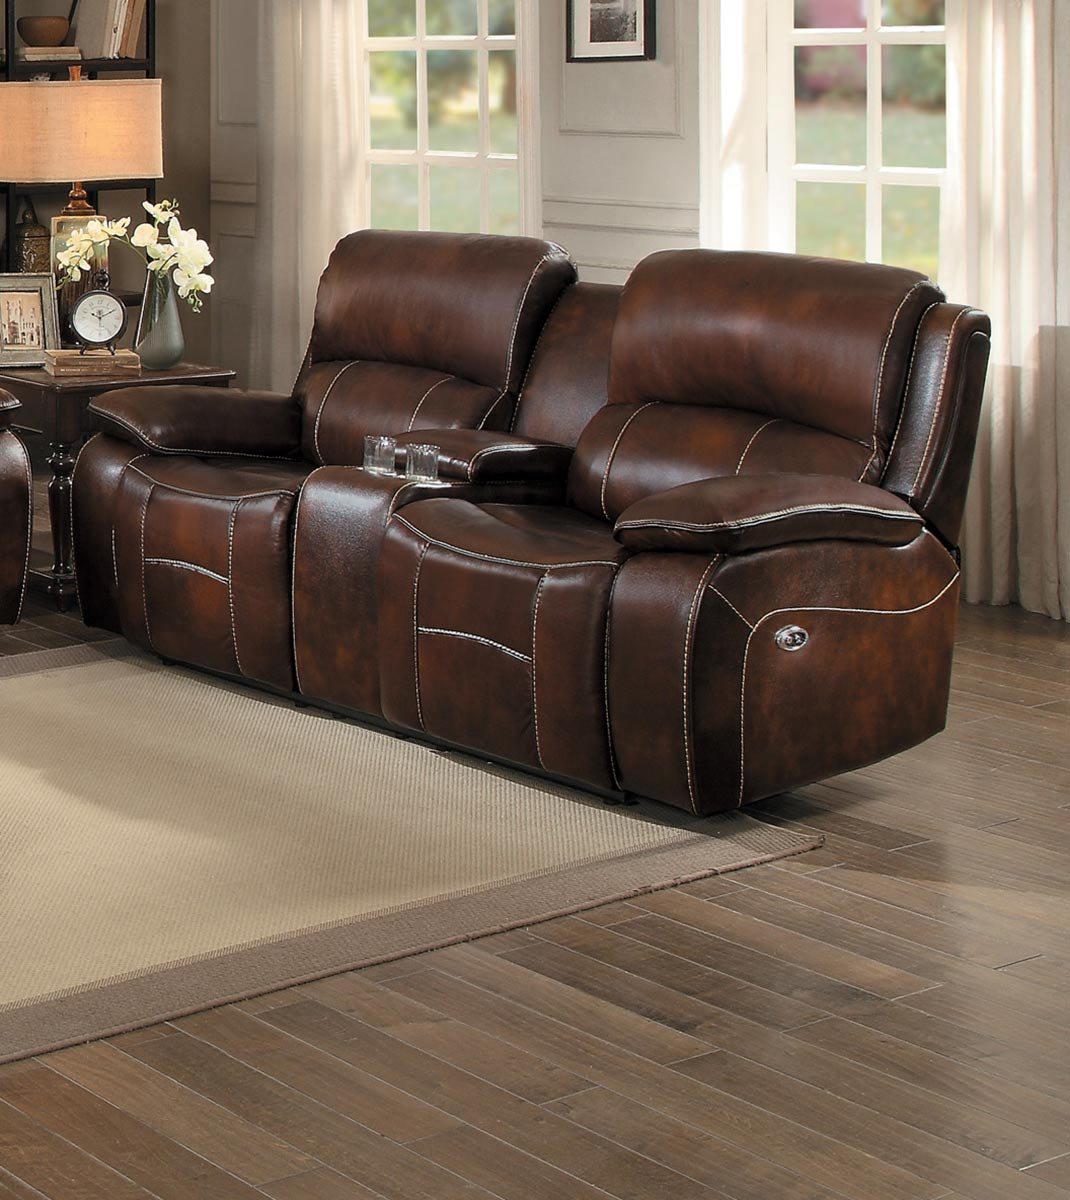 Homelegance Mahala Power Double Reclining Love Seat with Center Console - Brown Top Grain Leather Match